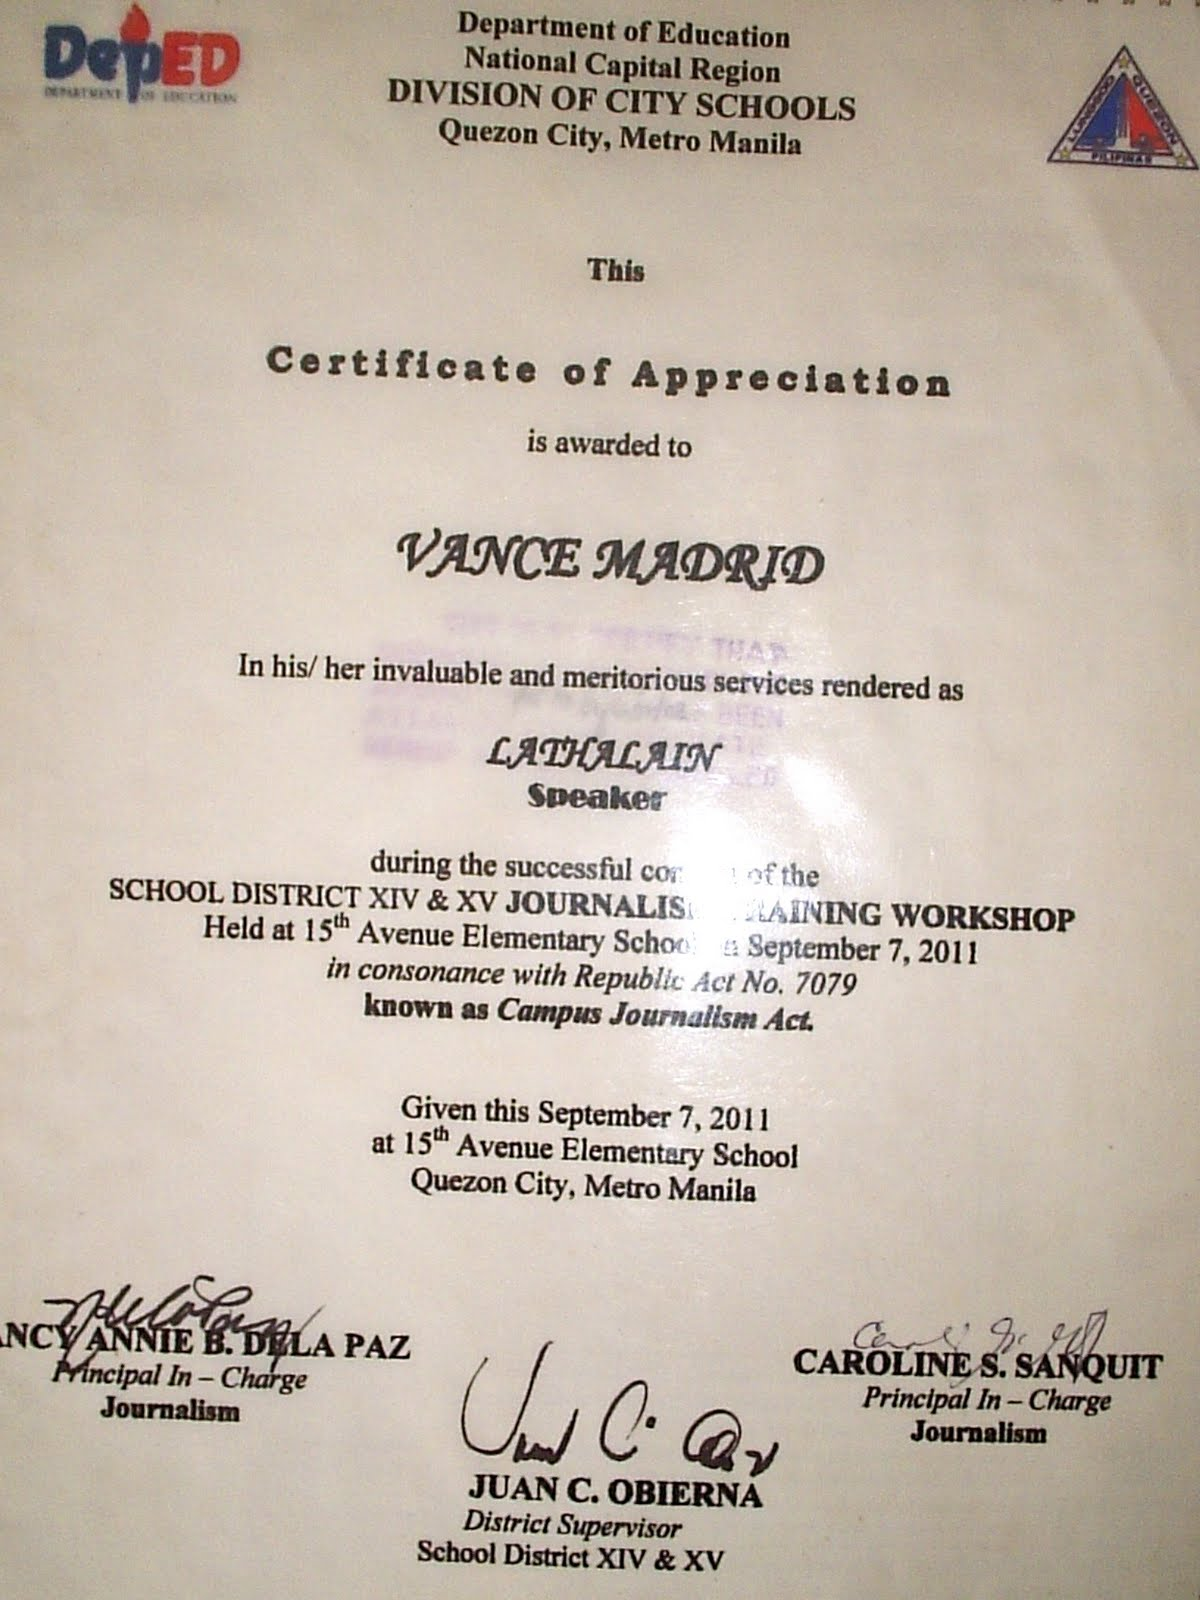 Dec 2010 . DATED: OCTOBER 2005. Revised February 2007. SUBJECT ...